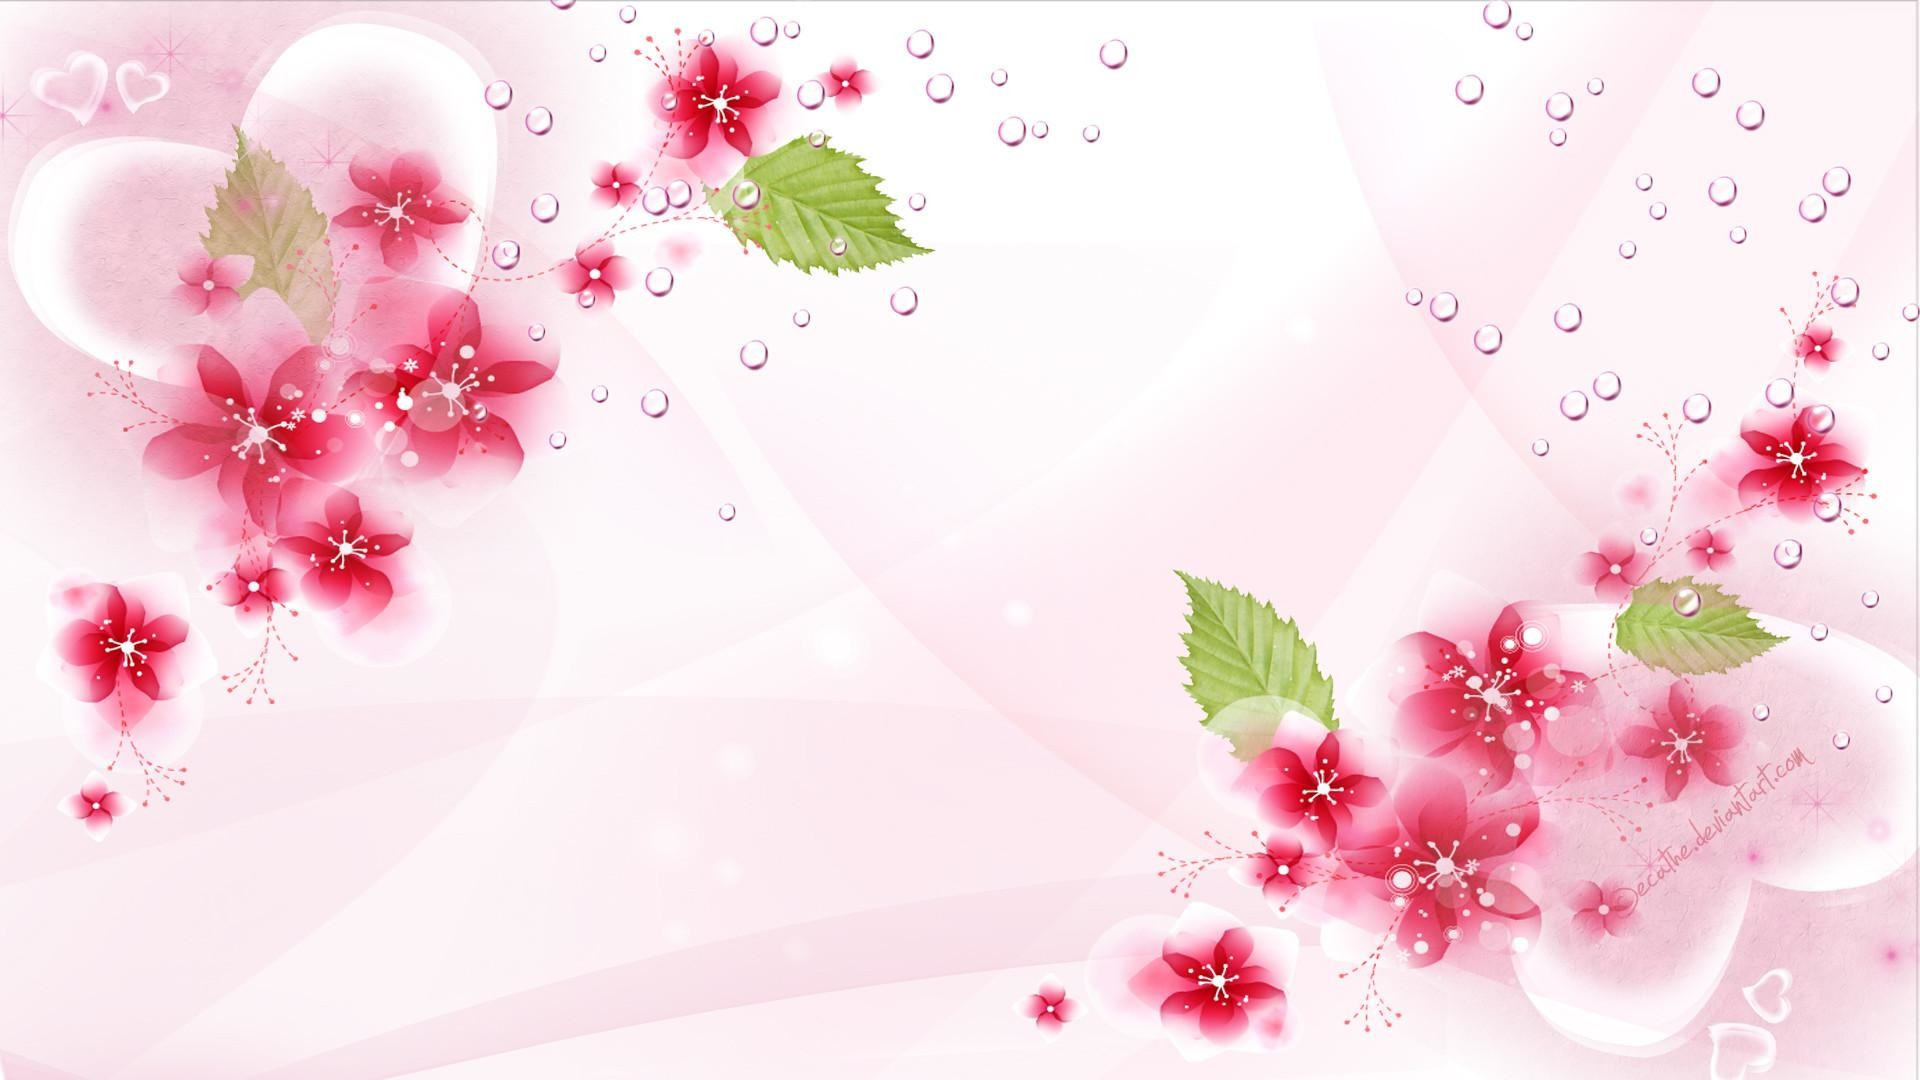 Res: 1920x1080, Best Flower Background Wallpaper High Quality Backgrounds Hd The Flowers  Ideas Of Pc